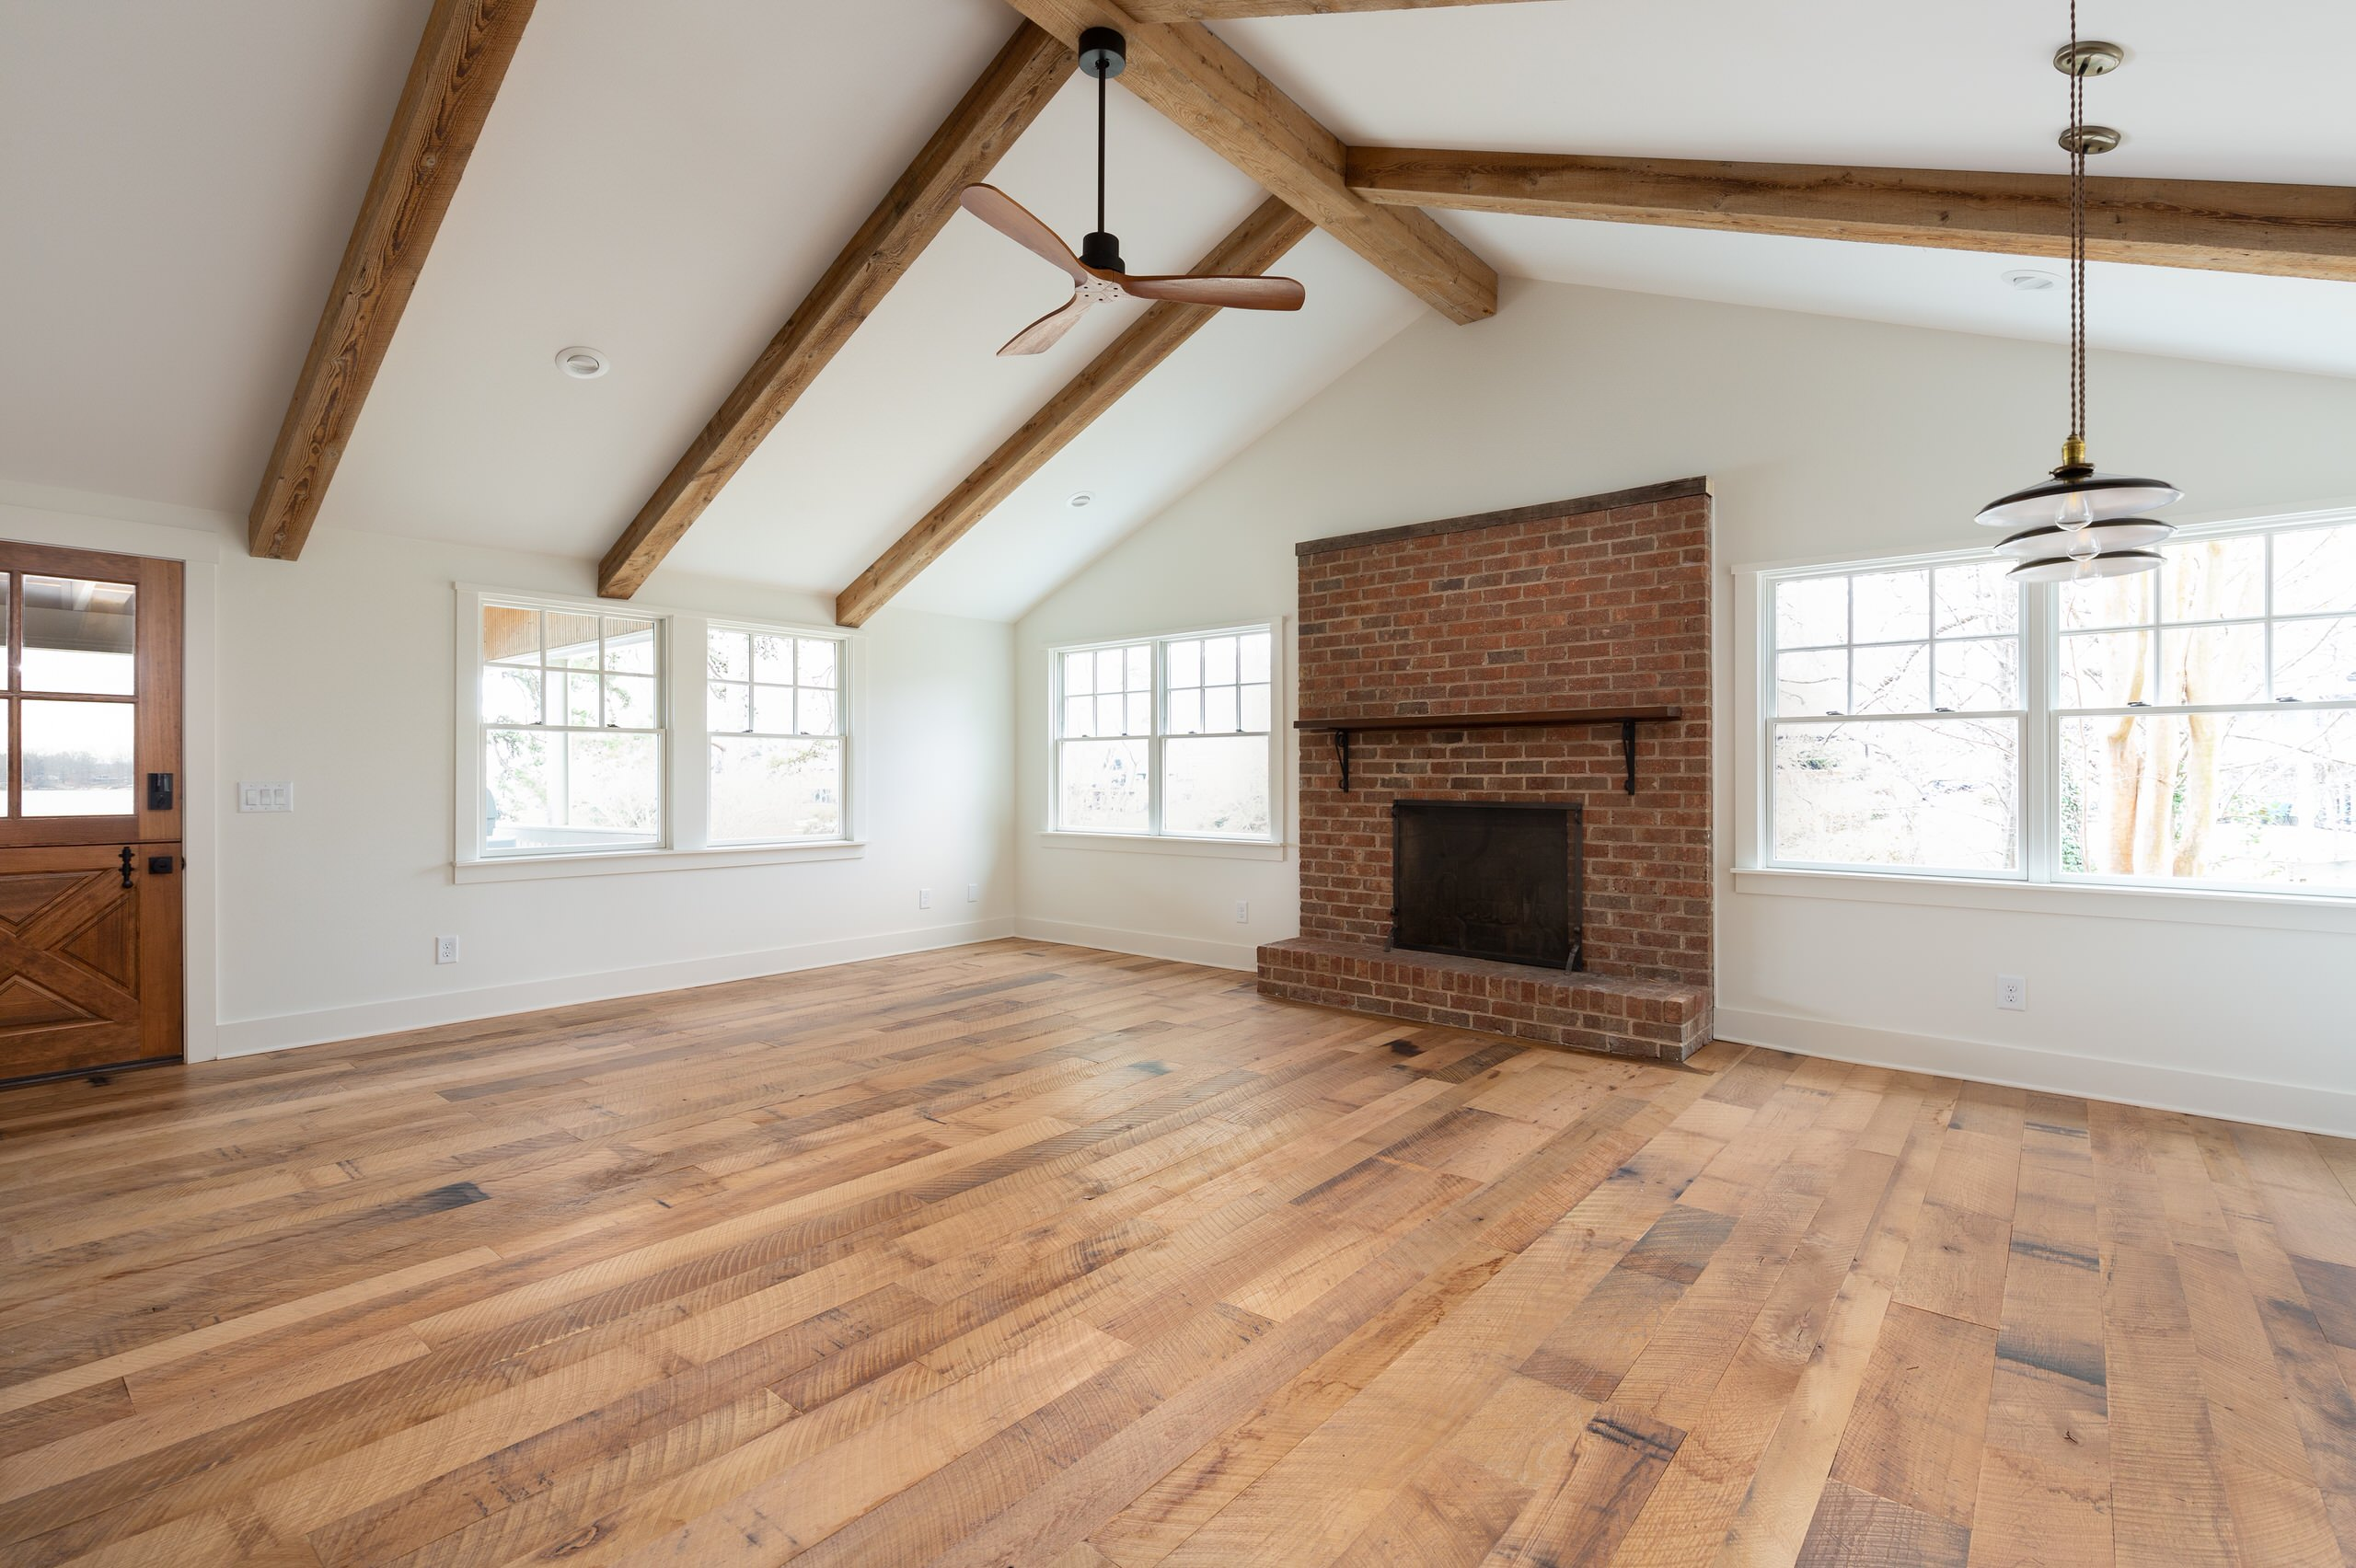 Living room and dining room with reclaimed wood beams on vaulted ceiling